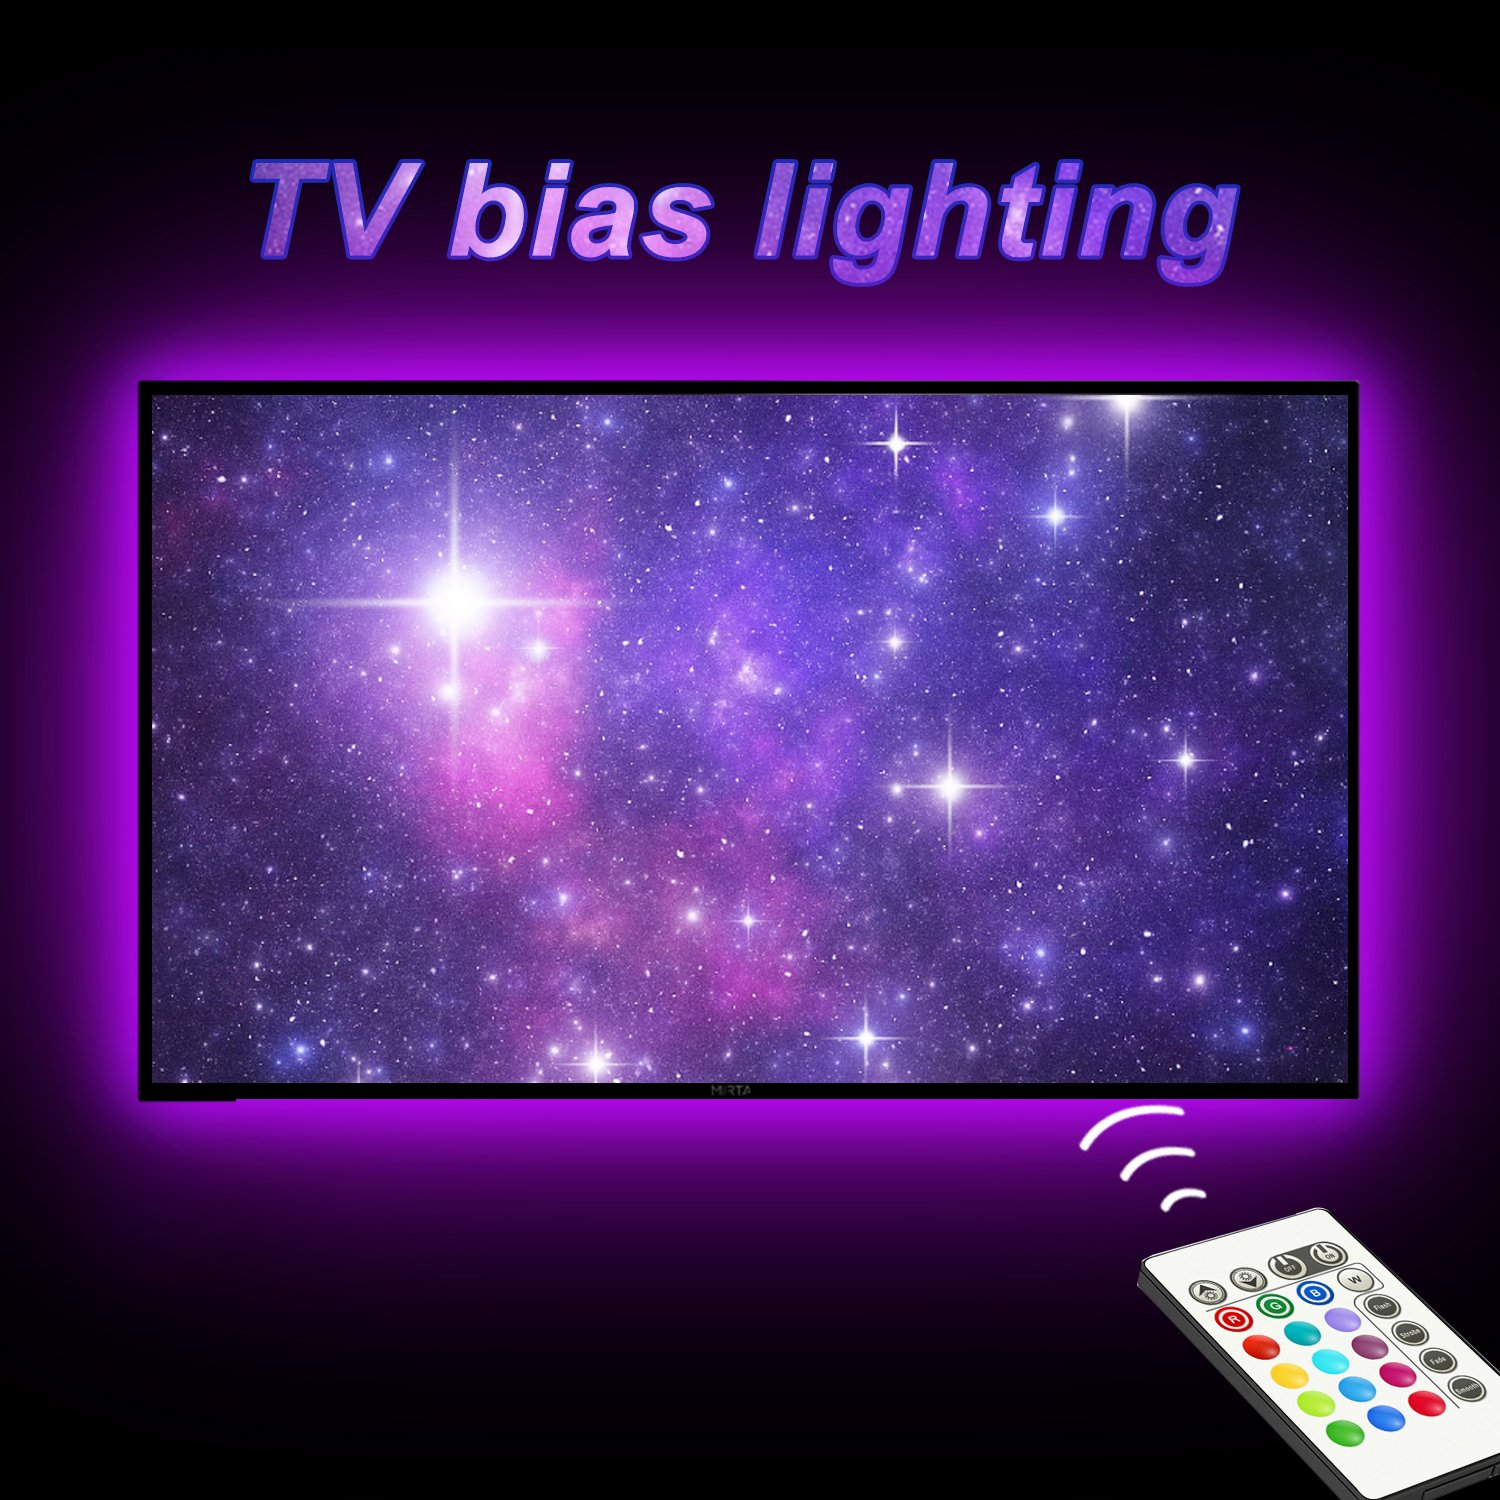 TV Bias Lighting,LED Strip Light USB Powered for 65 to 75 Inches HDTV, TV Backlight Kit with 24keys Remote 20 Color Options and Dimmable LED Lights WORATON